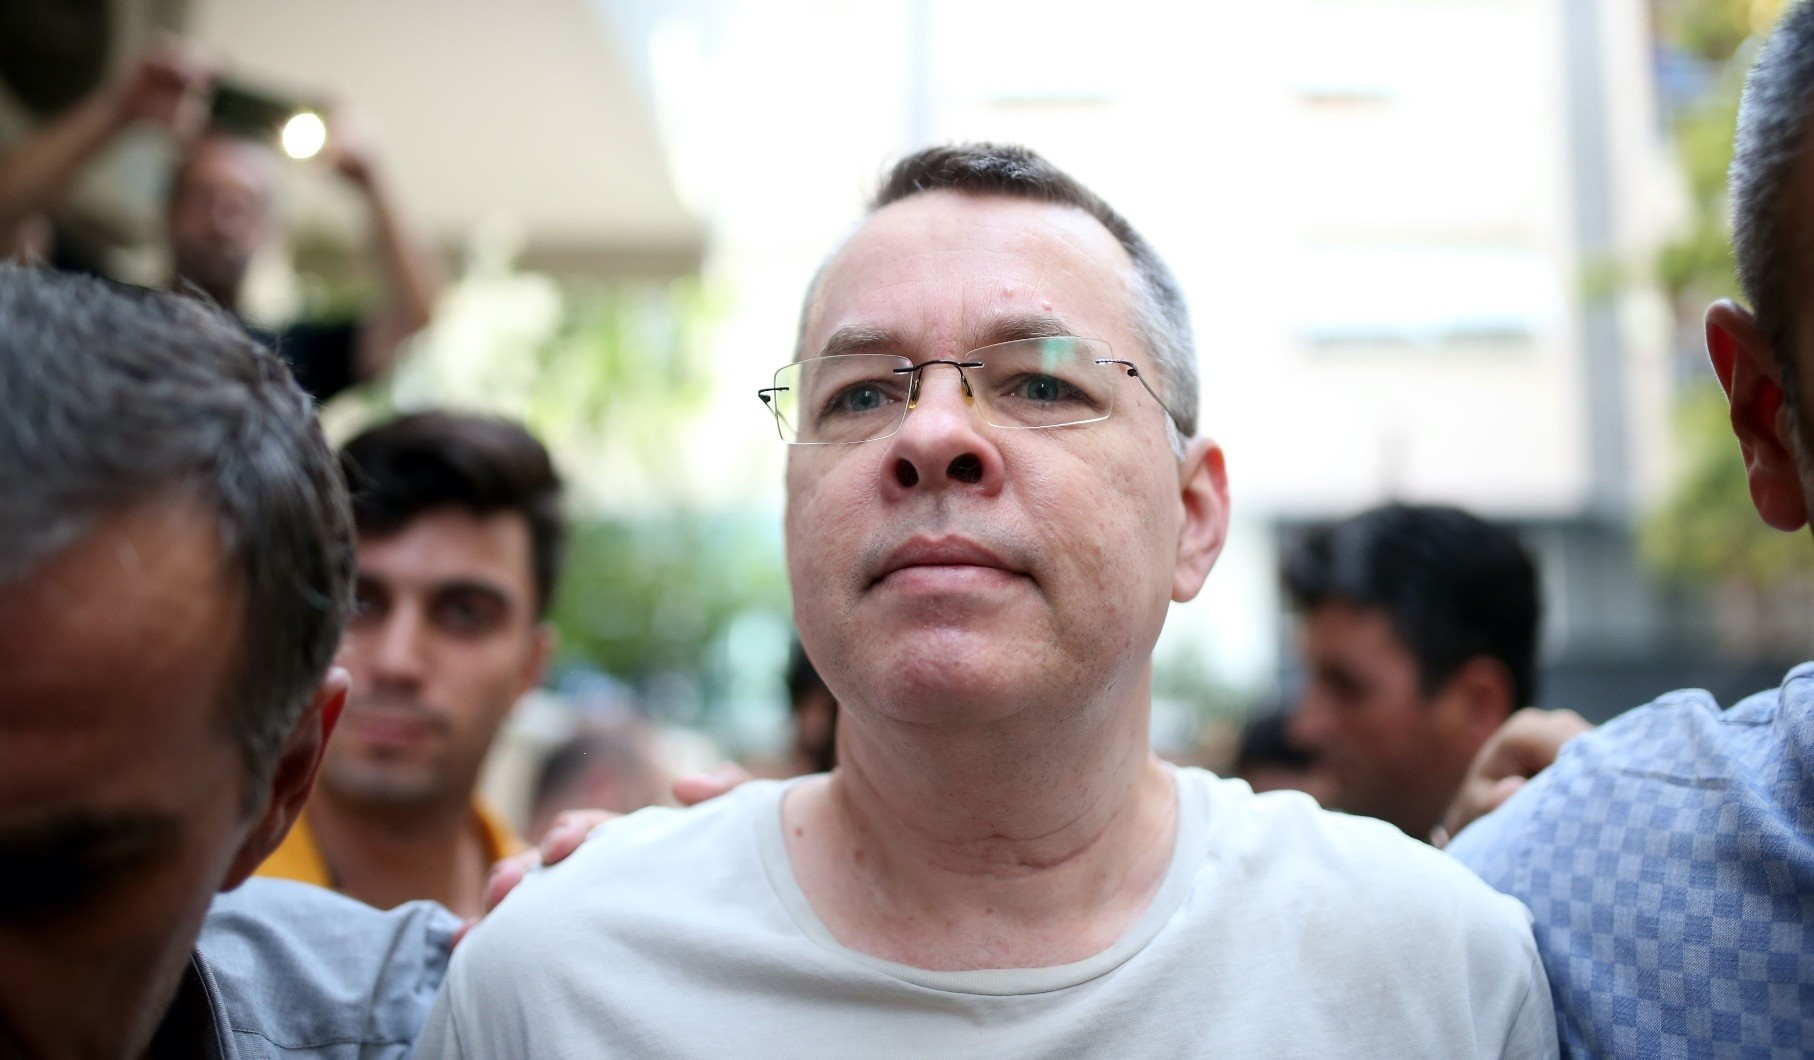 Pastor Andrew Craig Brunson is escorted by plainclothes police officers as he arrives at his house in Izmir, July 25.